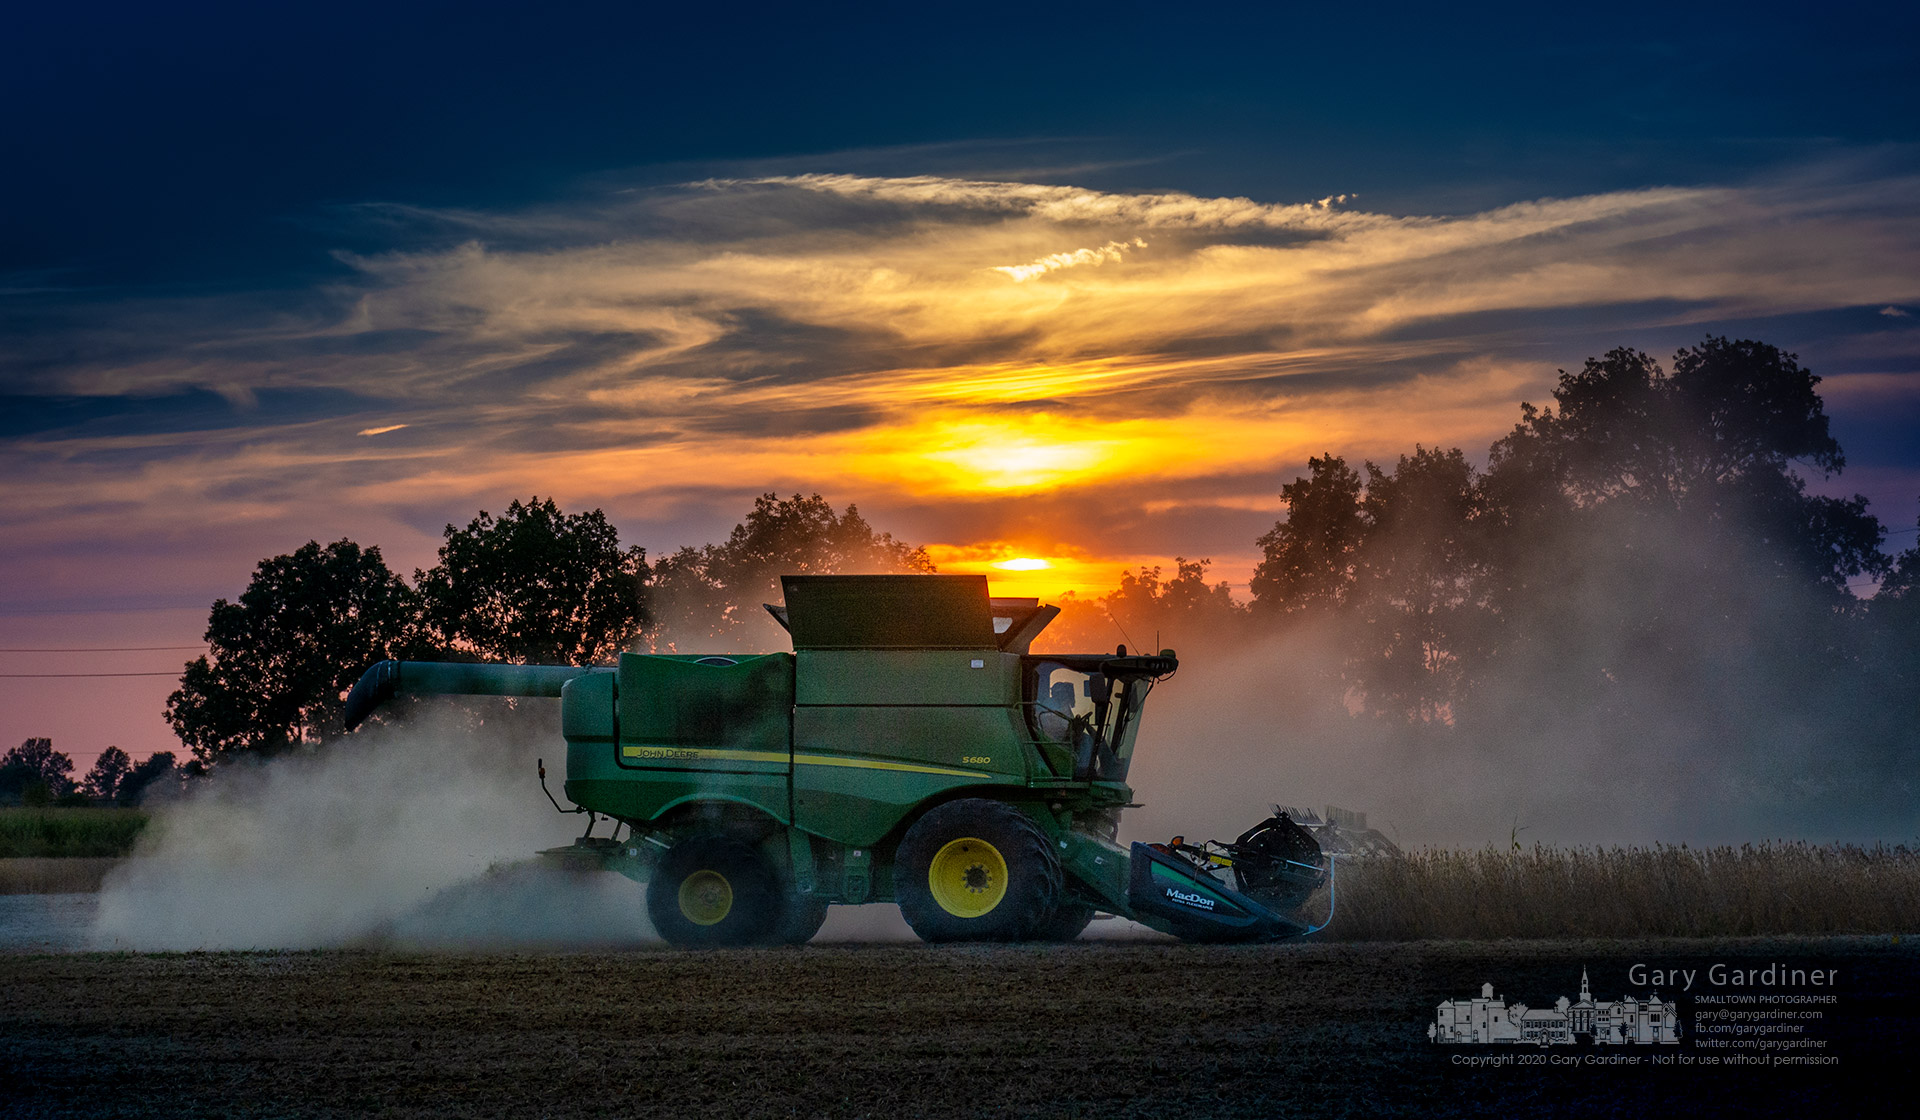 A farmer rushes to beat the sunset and a forecast of rain this week to harvest his soybean fields near Delaware, Ohio. My Final Photo for Sept.27, 2020.